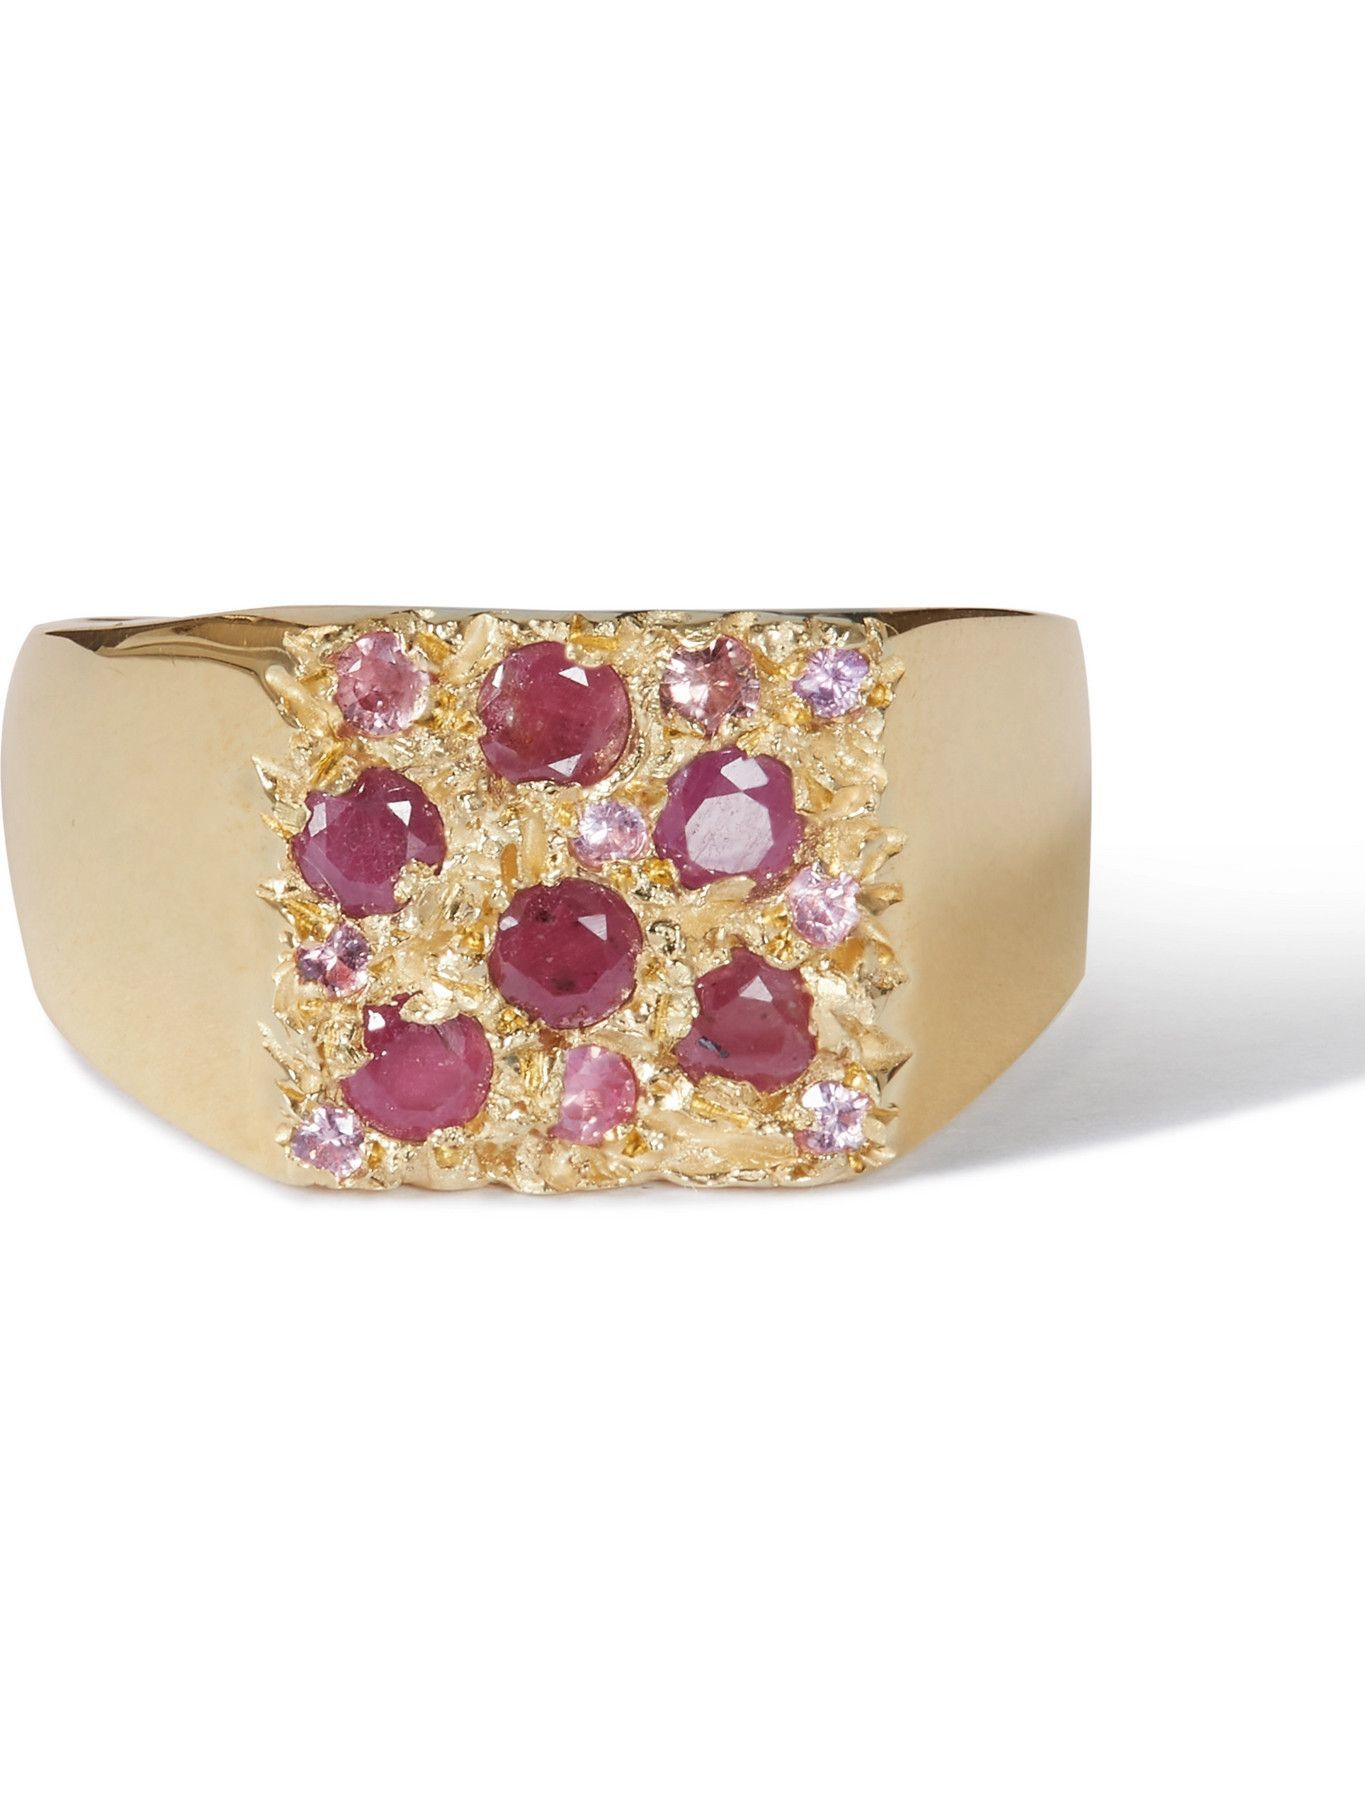 Photo: Bleue Burnham - Tuscany Superb Recycled 9-Karat Gold, Ruby and Sapphire Signet Ring - Gold